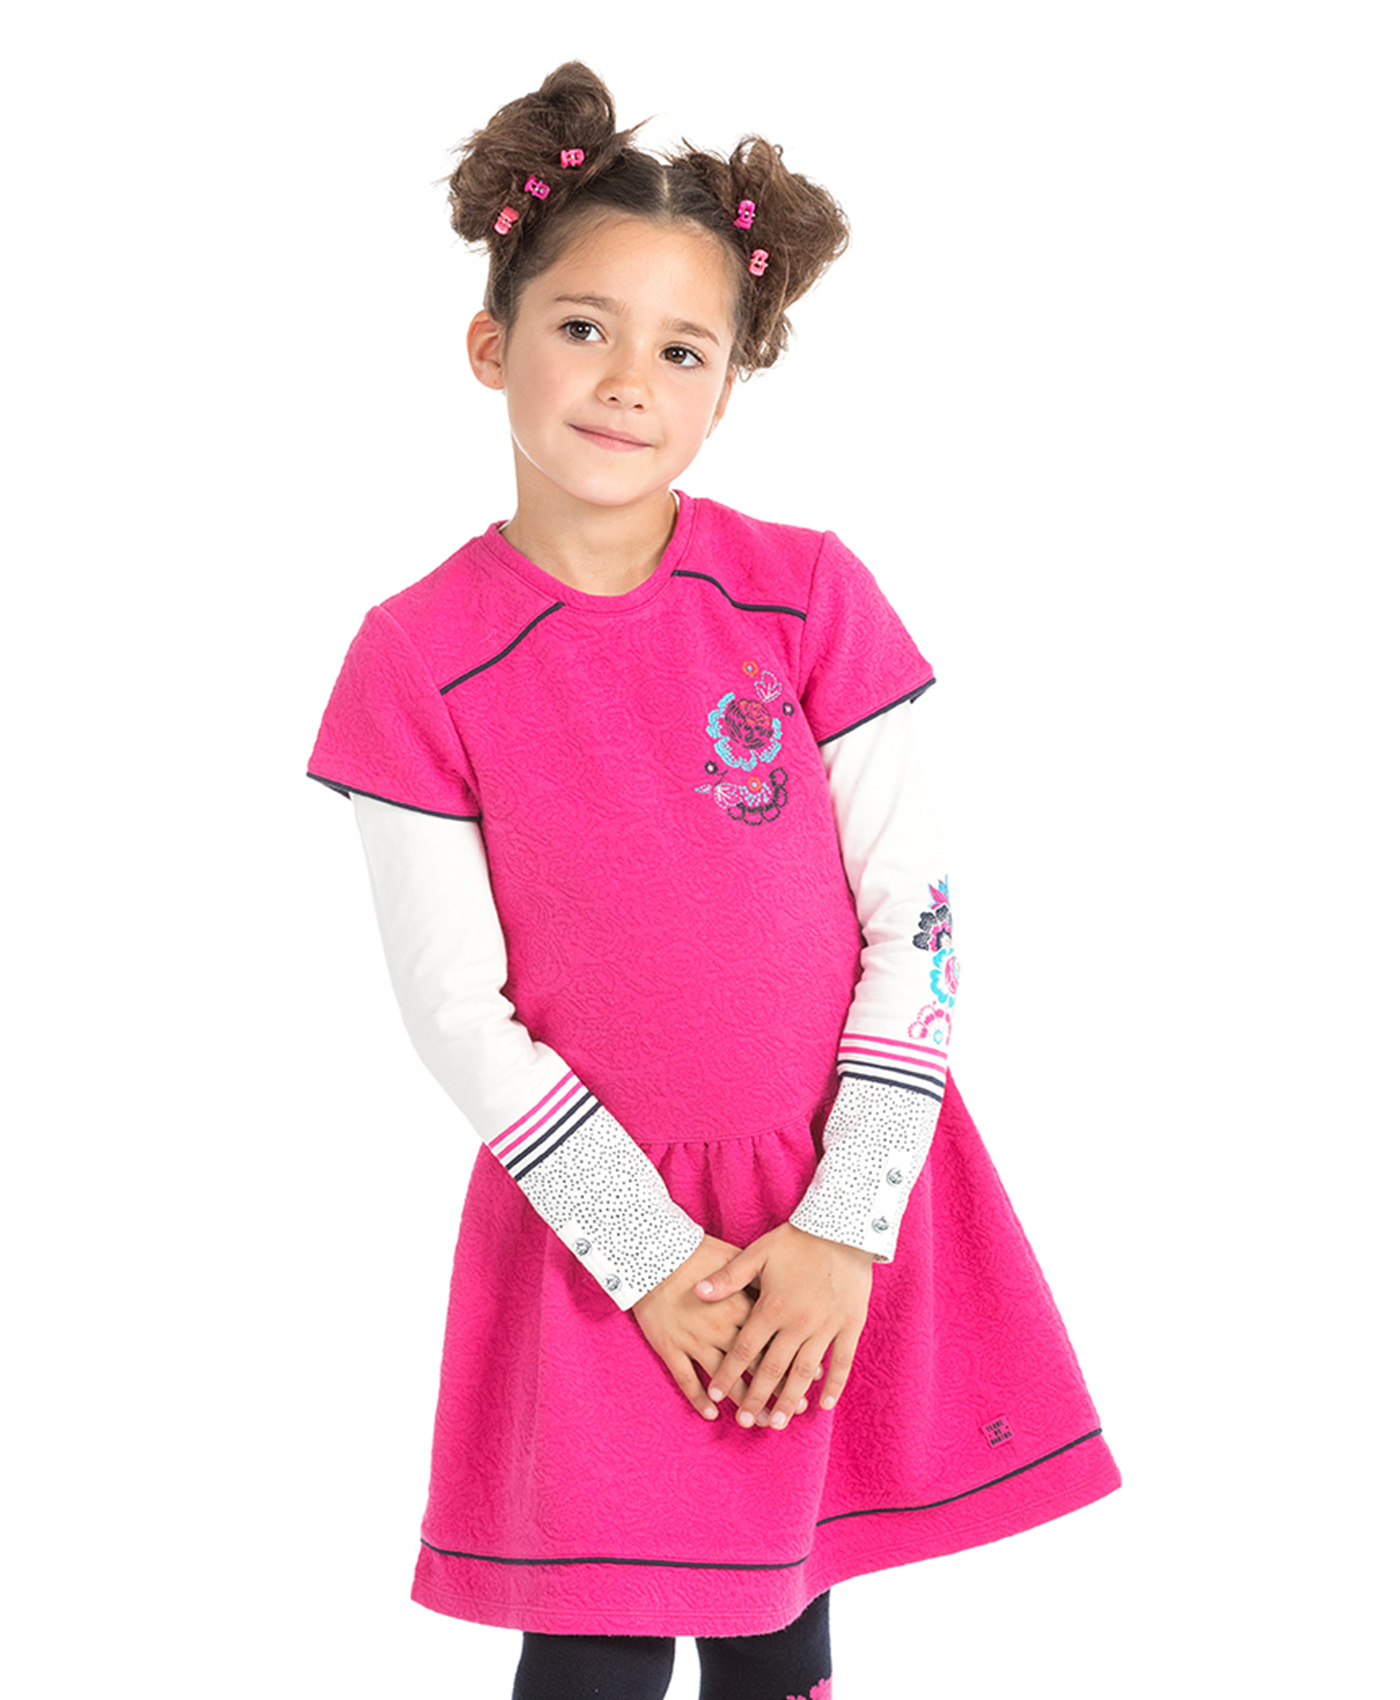 Robe patineuse fille - Mode marine Bonnes affaires